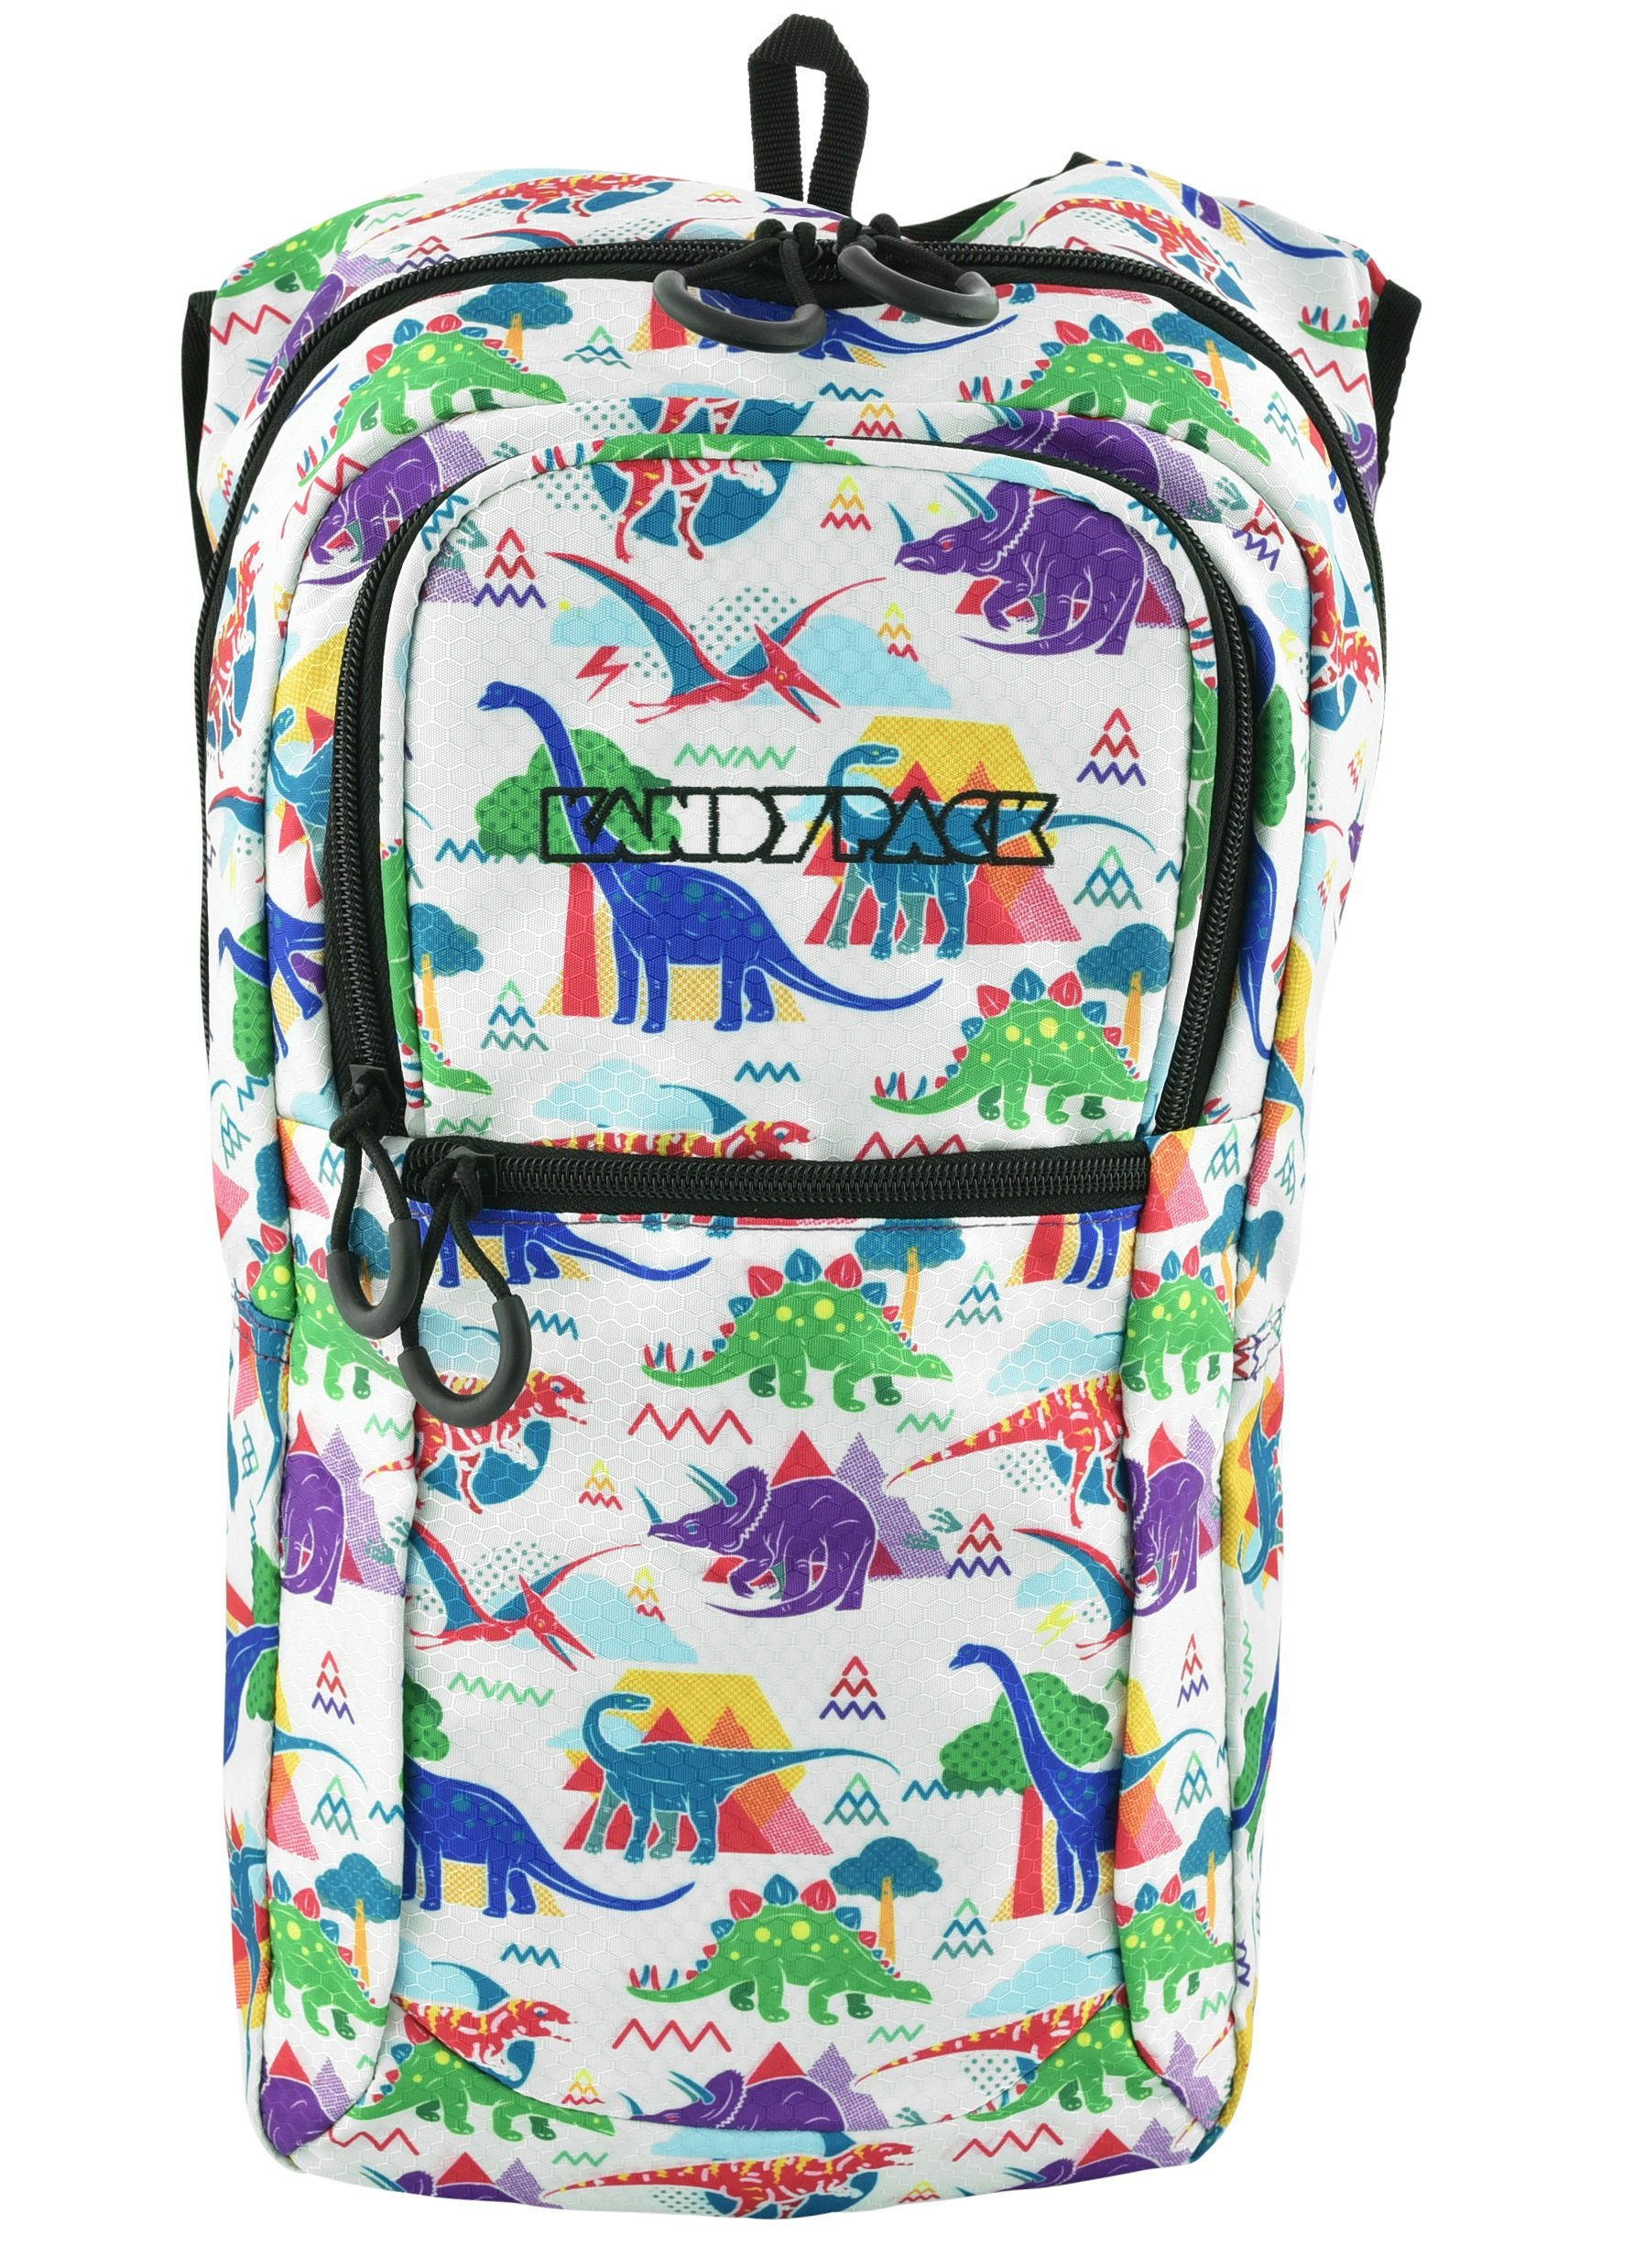 KANDYPACK Rave Hydration Pack Backpack with Water Bladder Teal Holographic